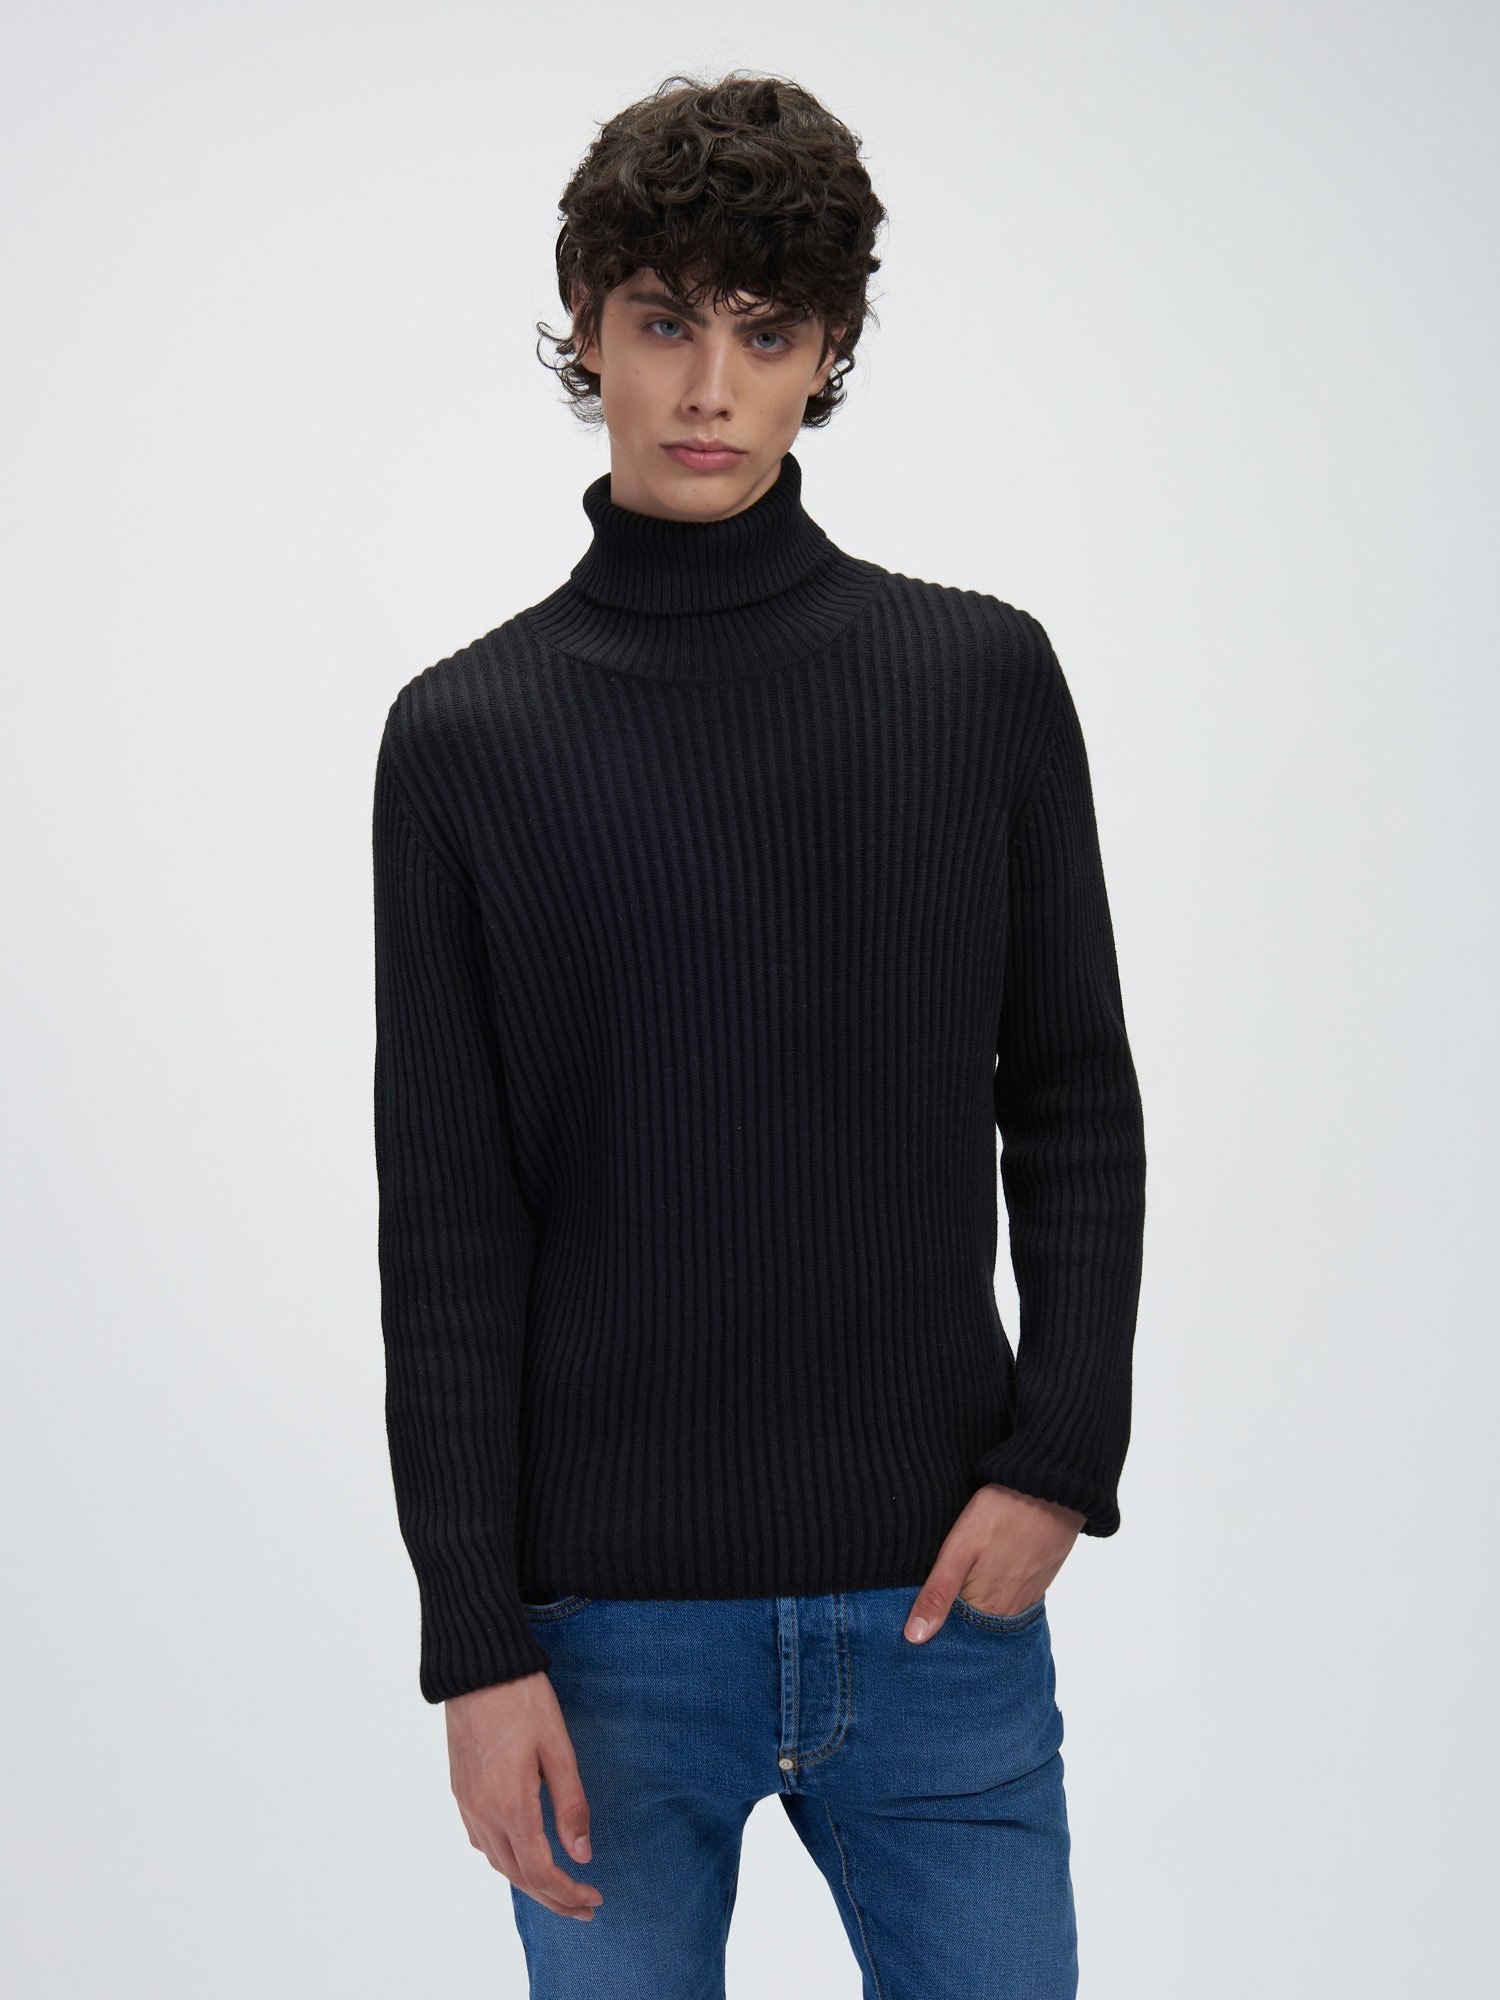 RIBBED TURTLENECK SWEATER - Blauer